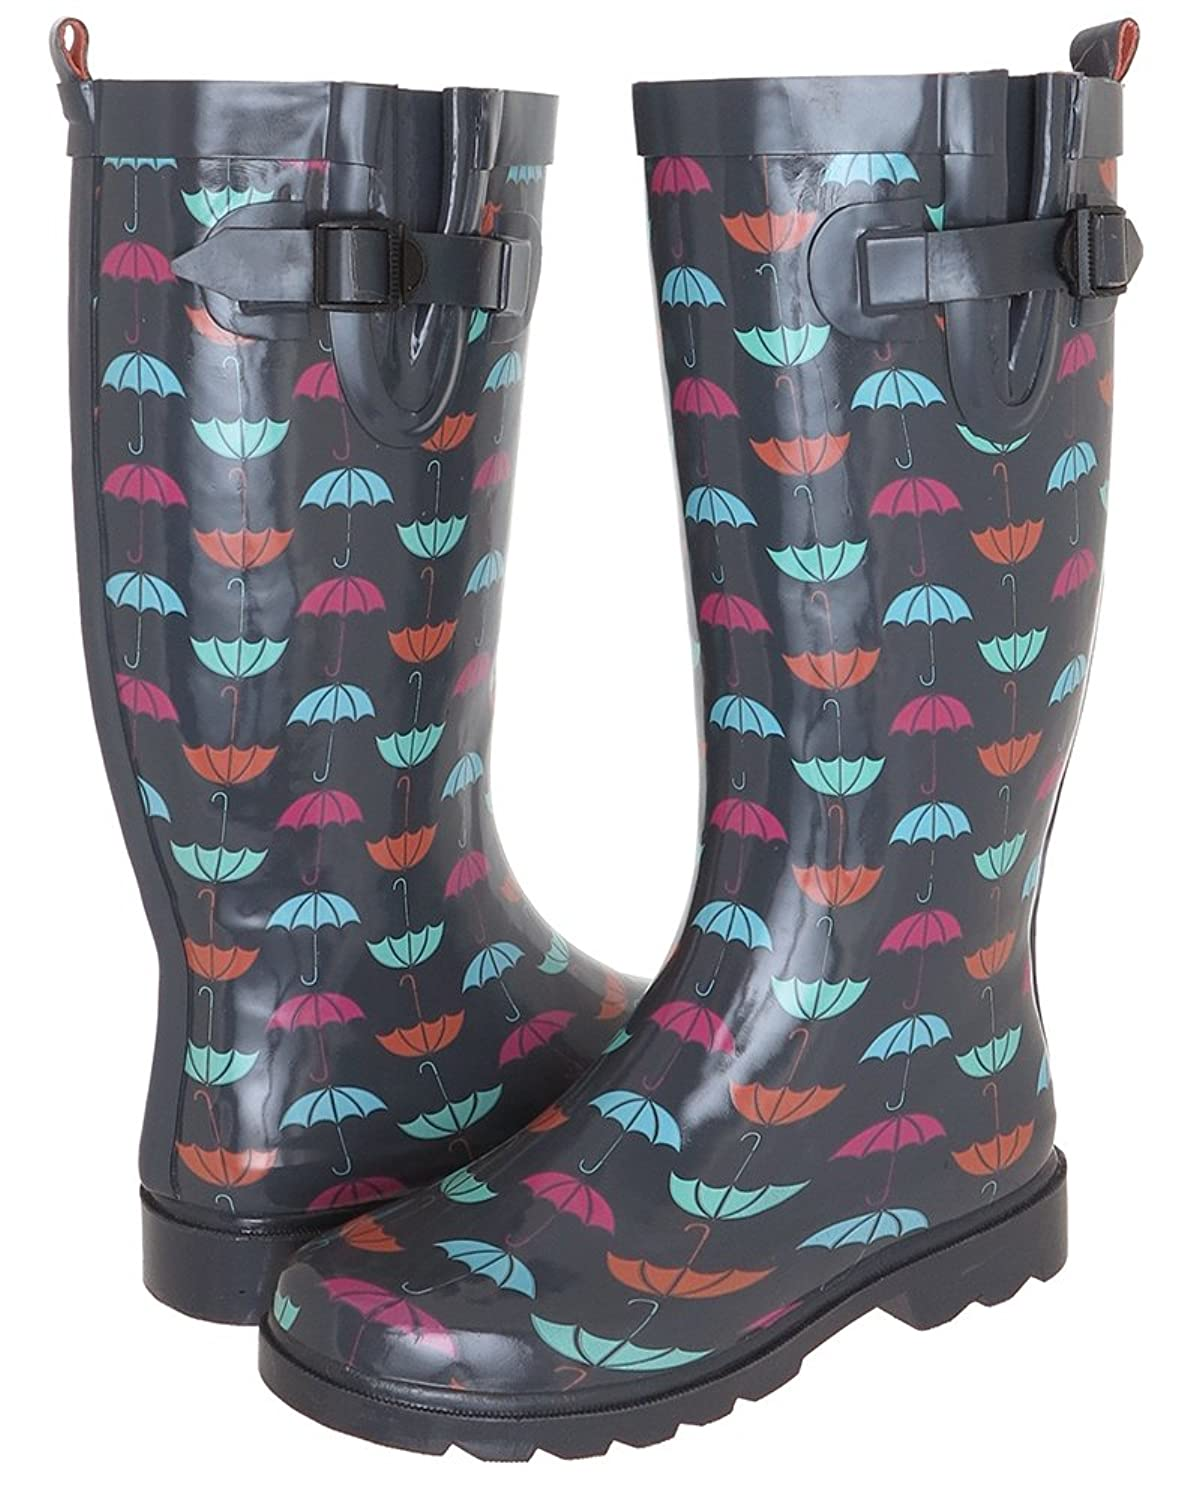 Two Color Pebble Pattern Printed Ladies Tall Rubber Rain Boot